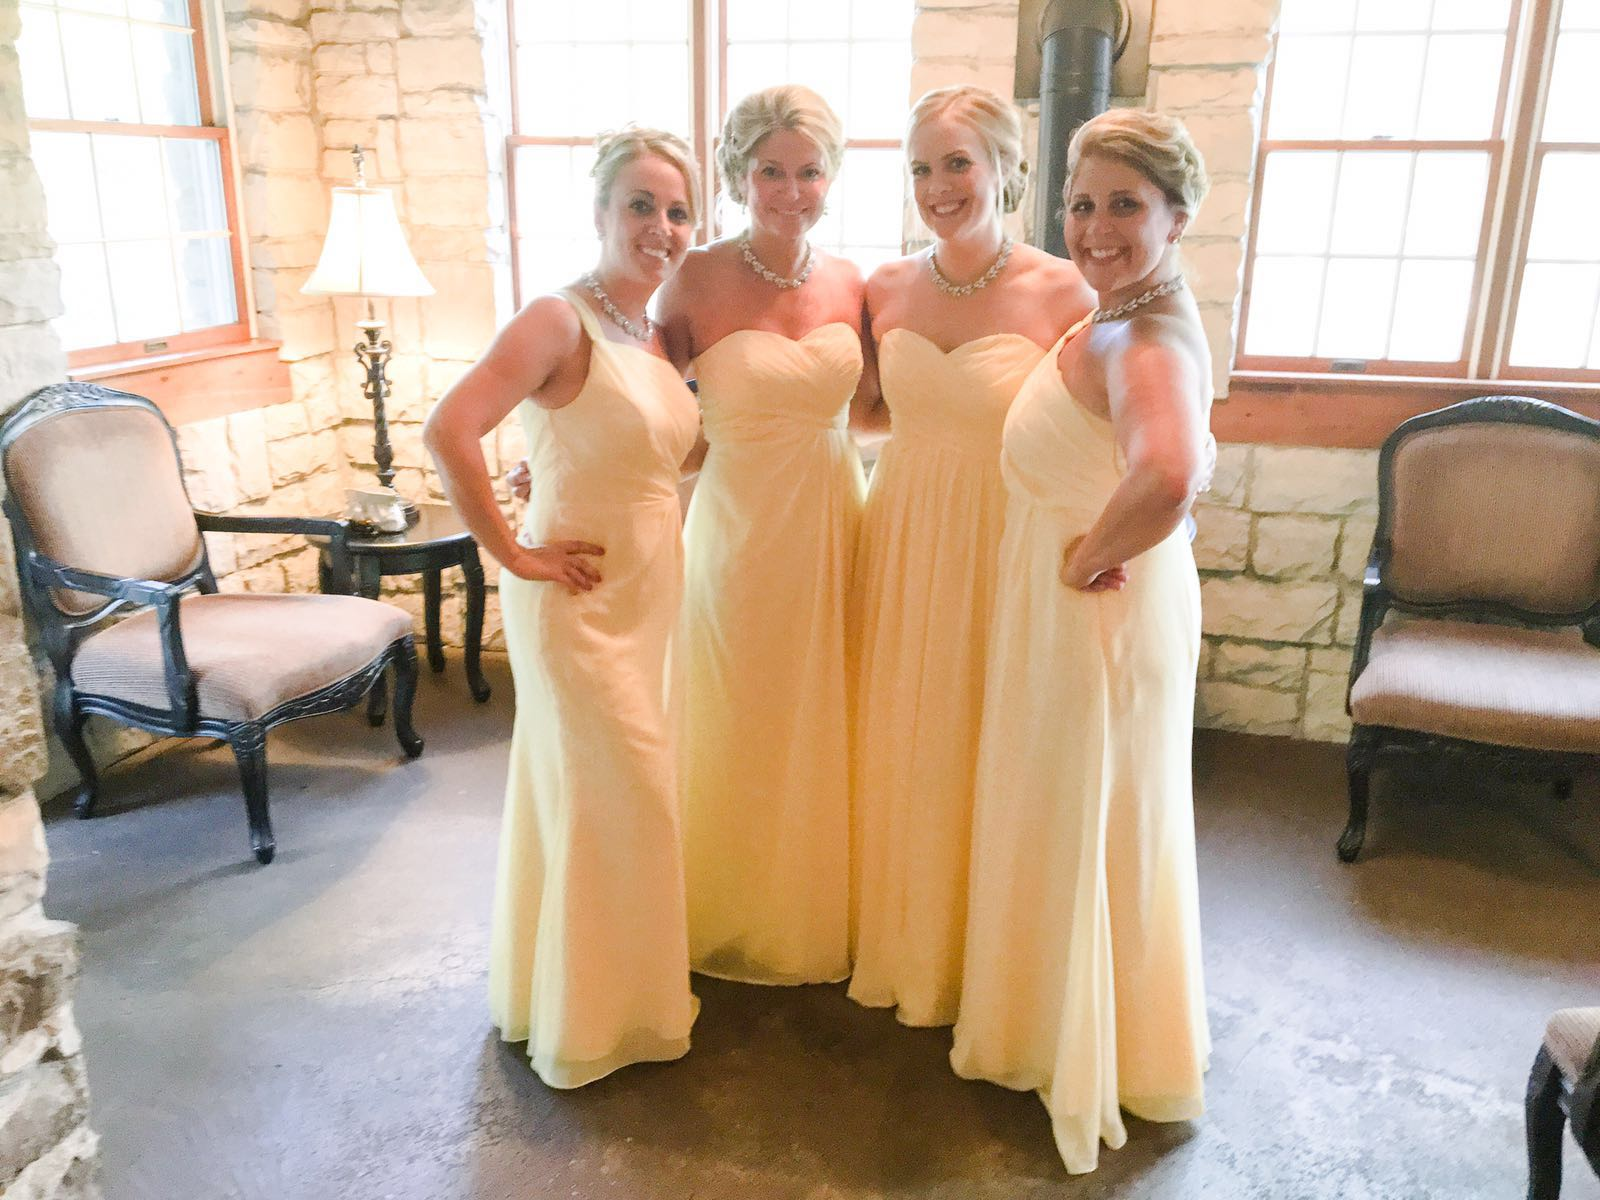 Invigorating Orange Bridesmaid Dresses Orange Gowns Style Gallery Azazie Orange Bridesmaid Dresses Pinterest Orange Bridesmaid Dresses Nz wedding dress Orange Bridesmaid Dresses